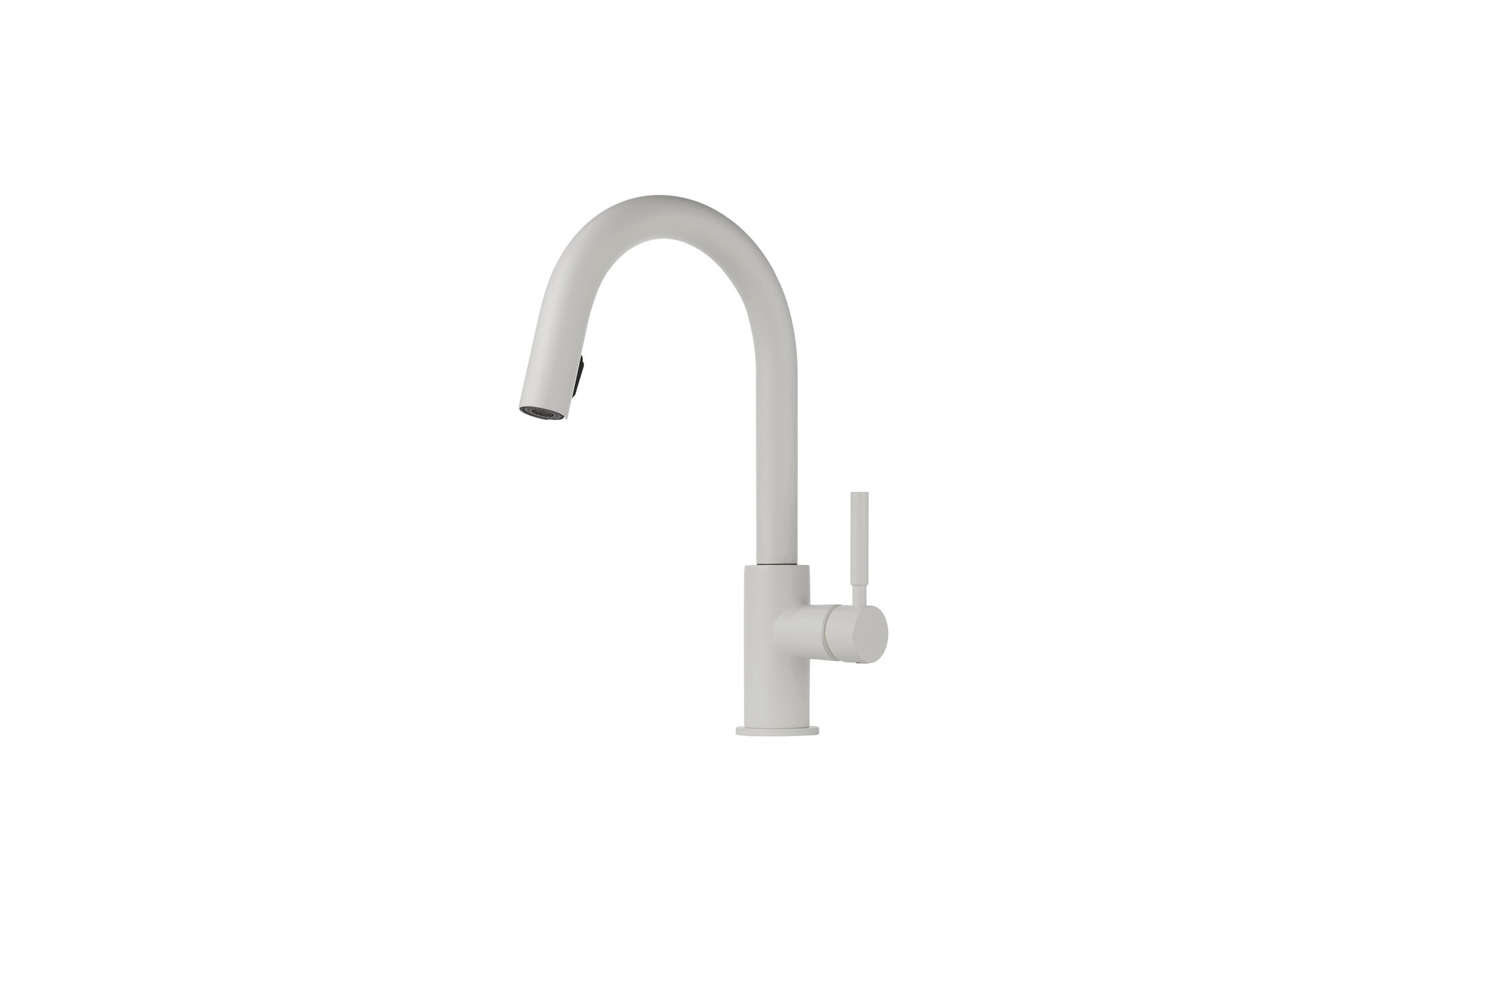 The Brizo Solna Kitchen Faucet with Pullout Spray in matte white is $44loading=